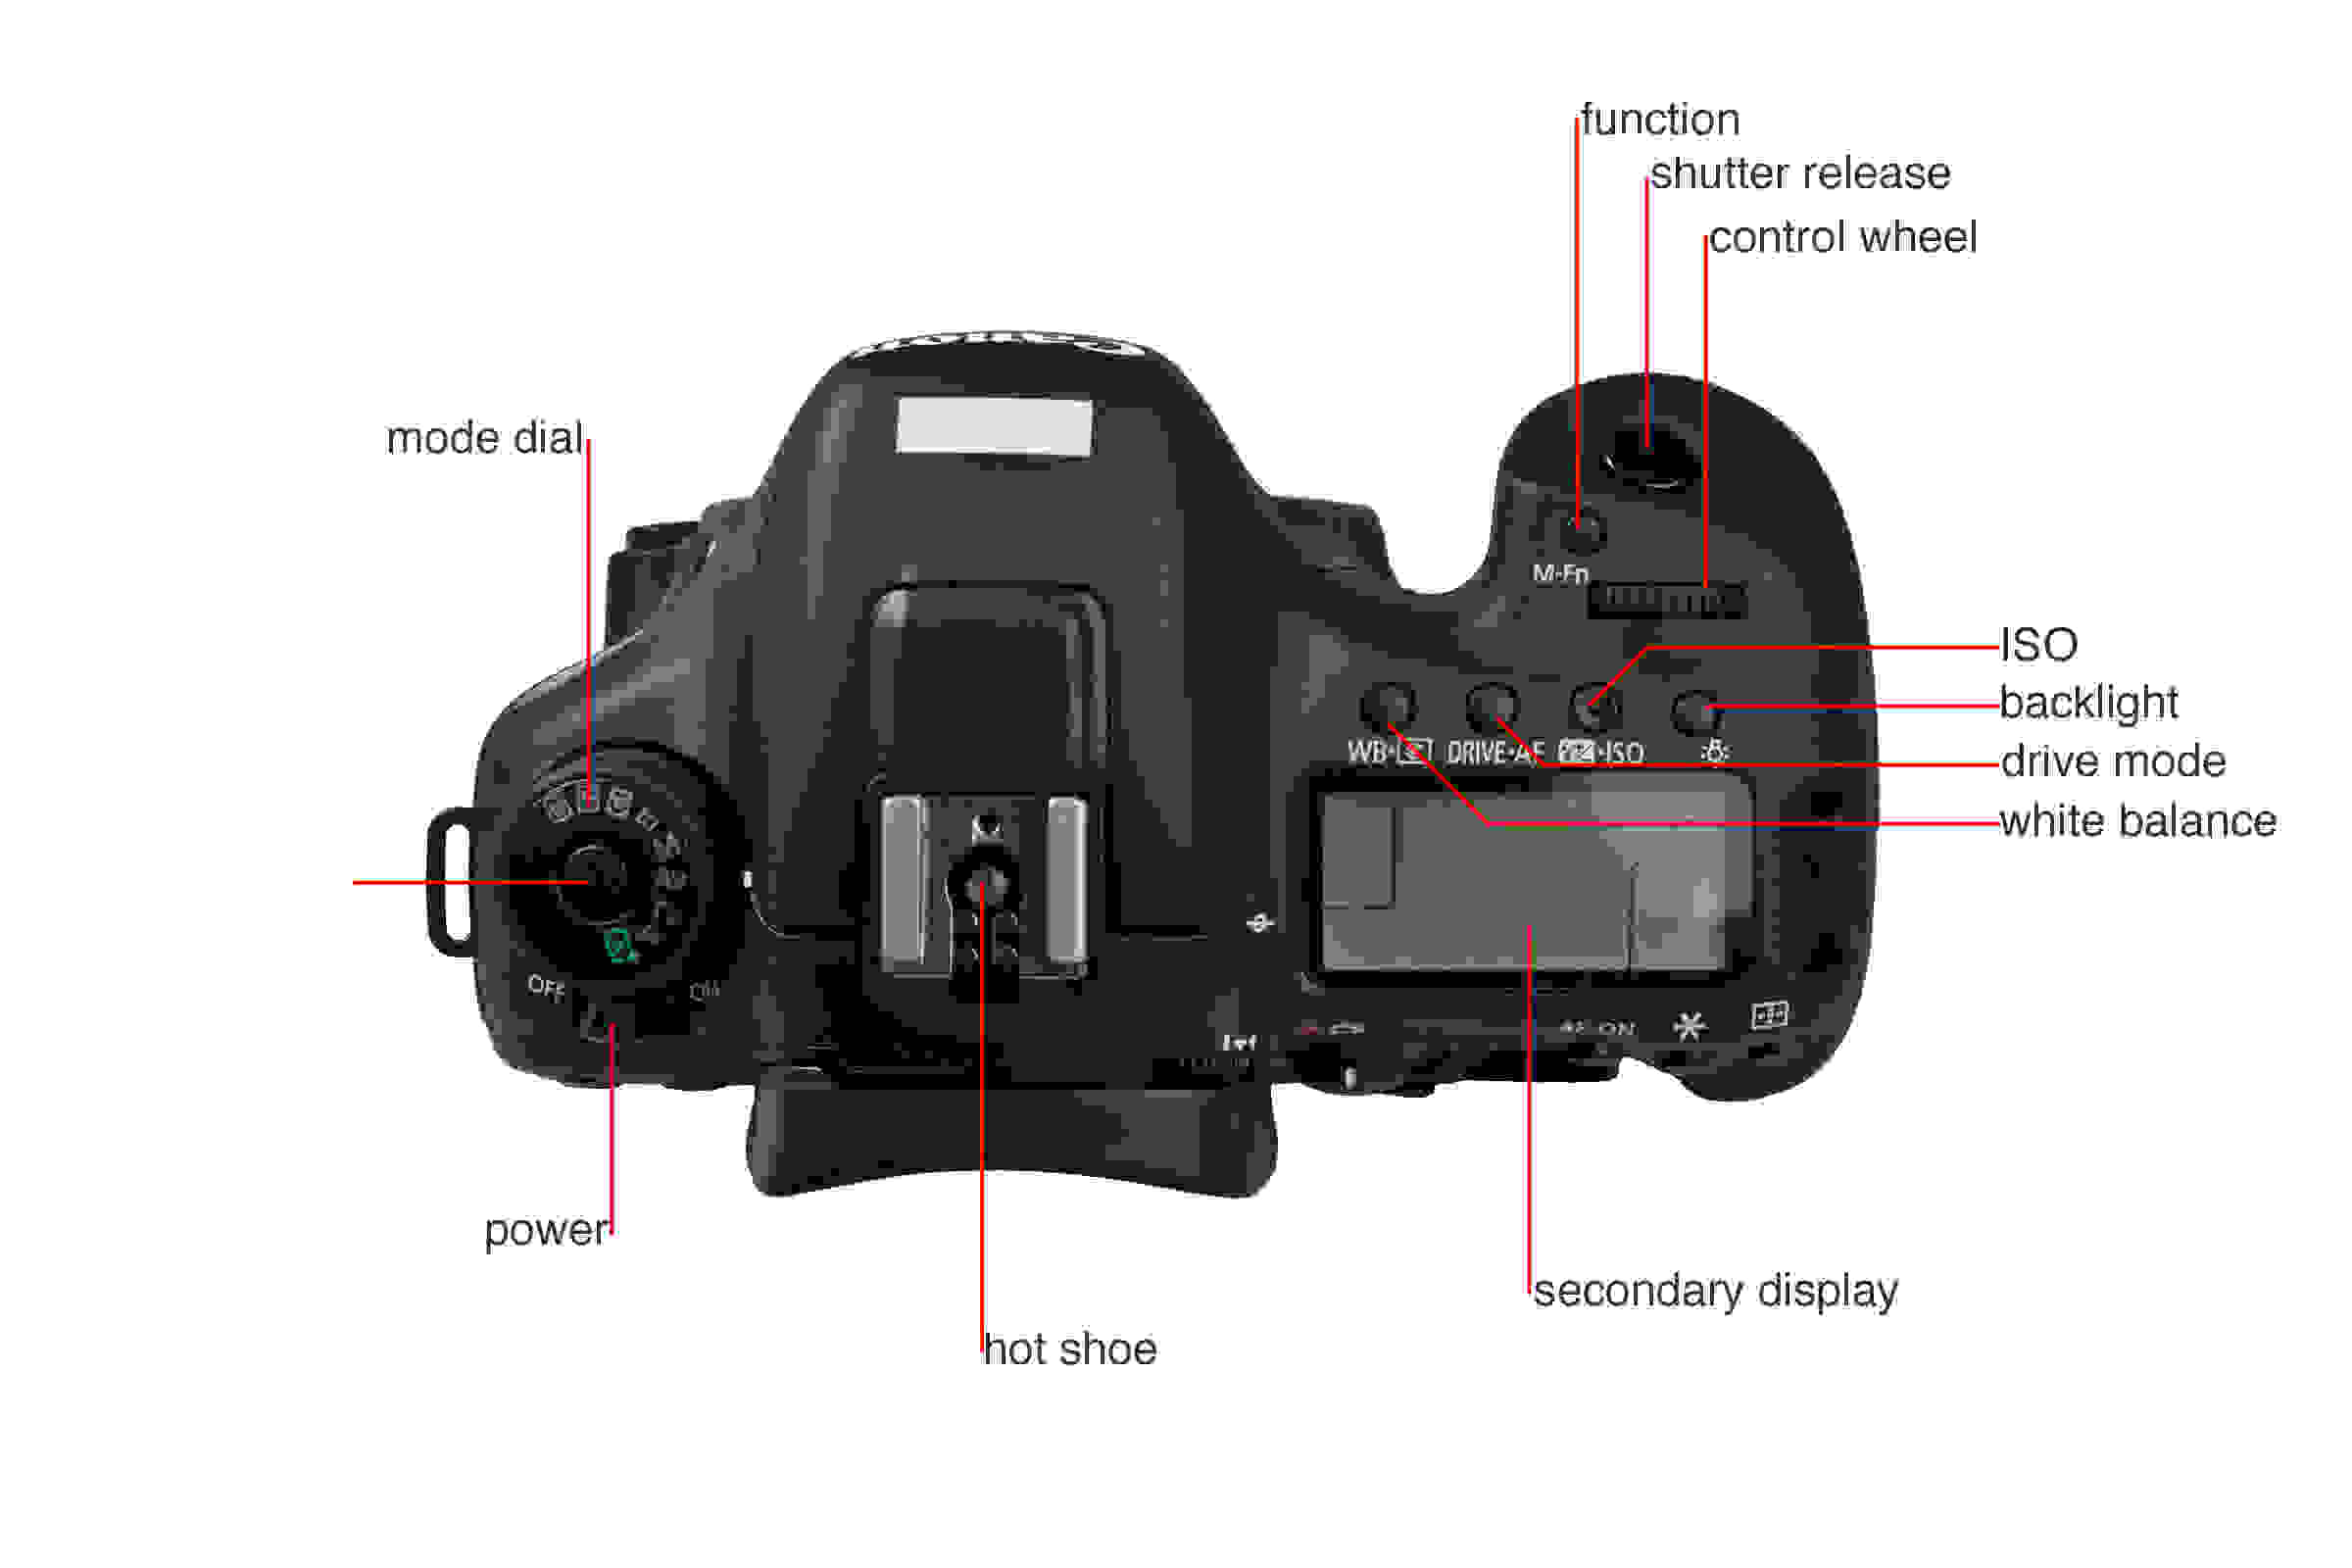 A picture illustrating the buttons and controls of the Canon 7D MkII's top.